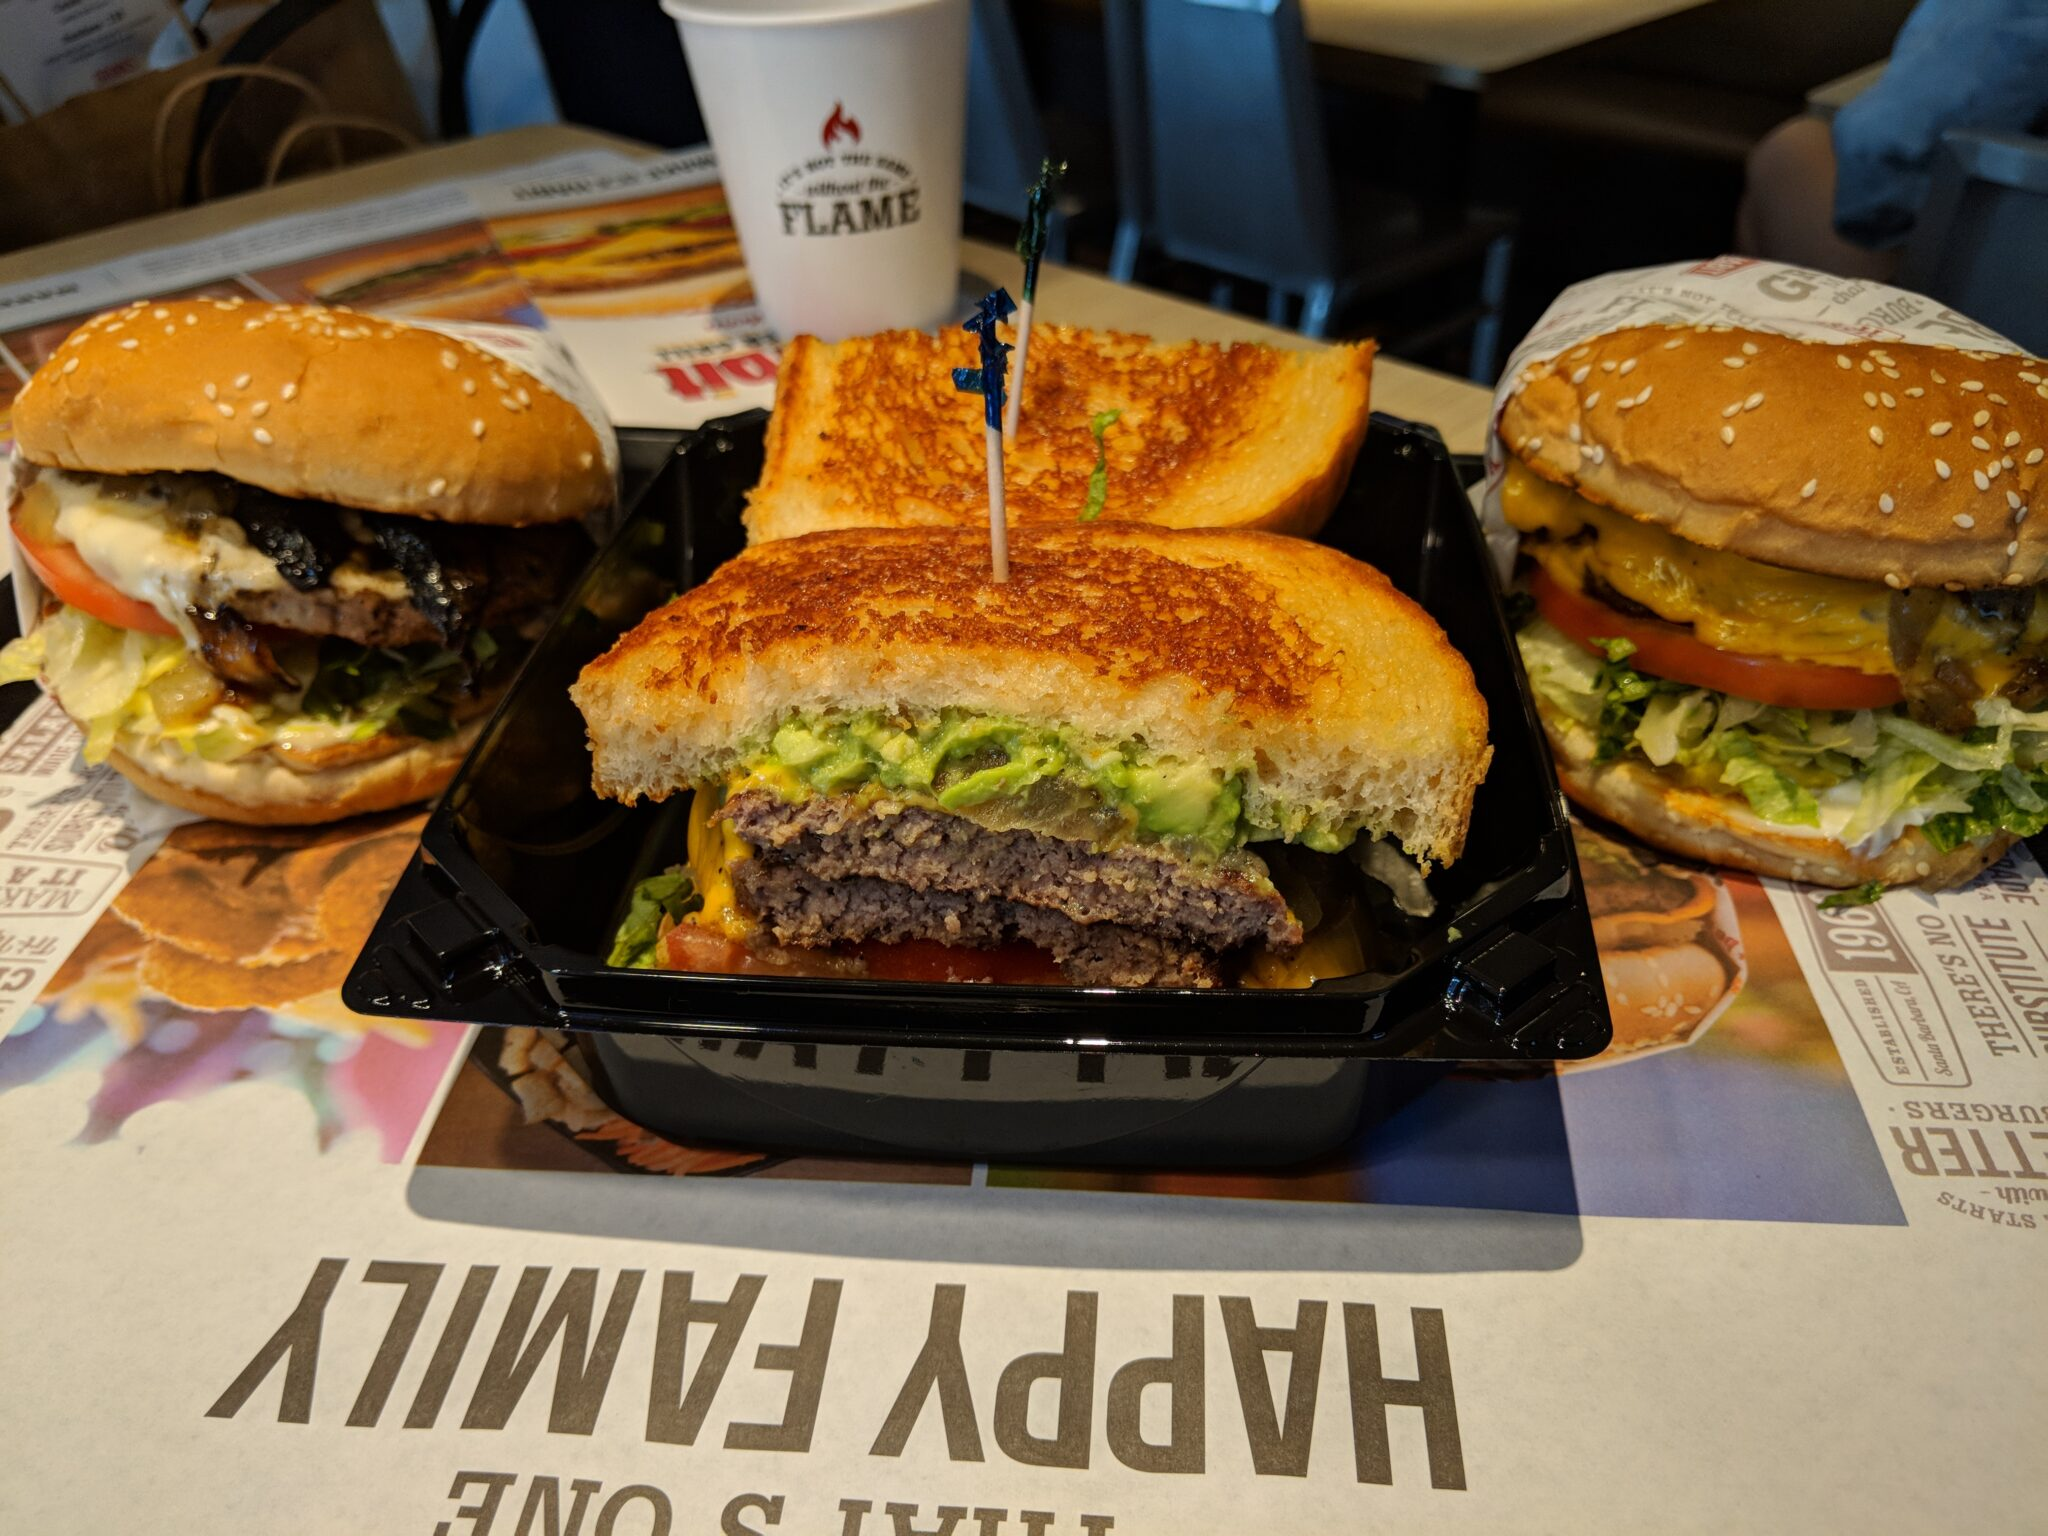 The Habit Burger Grill makes everything fresh, so have a burger your way.